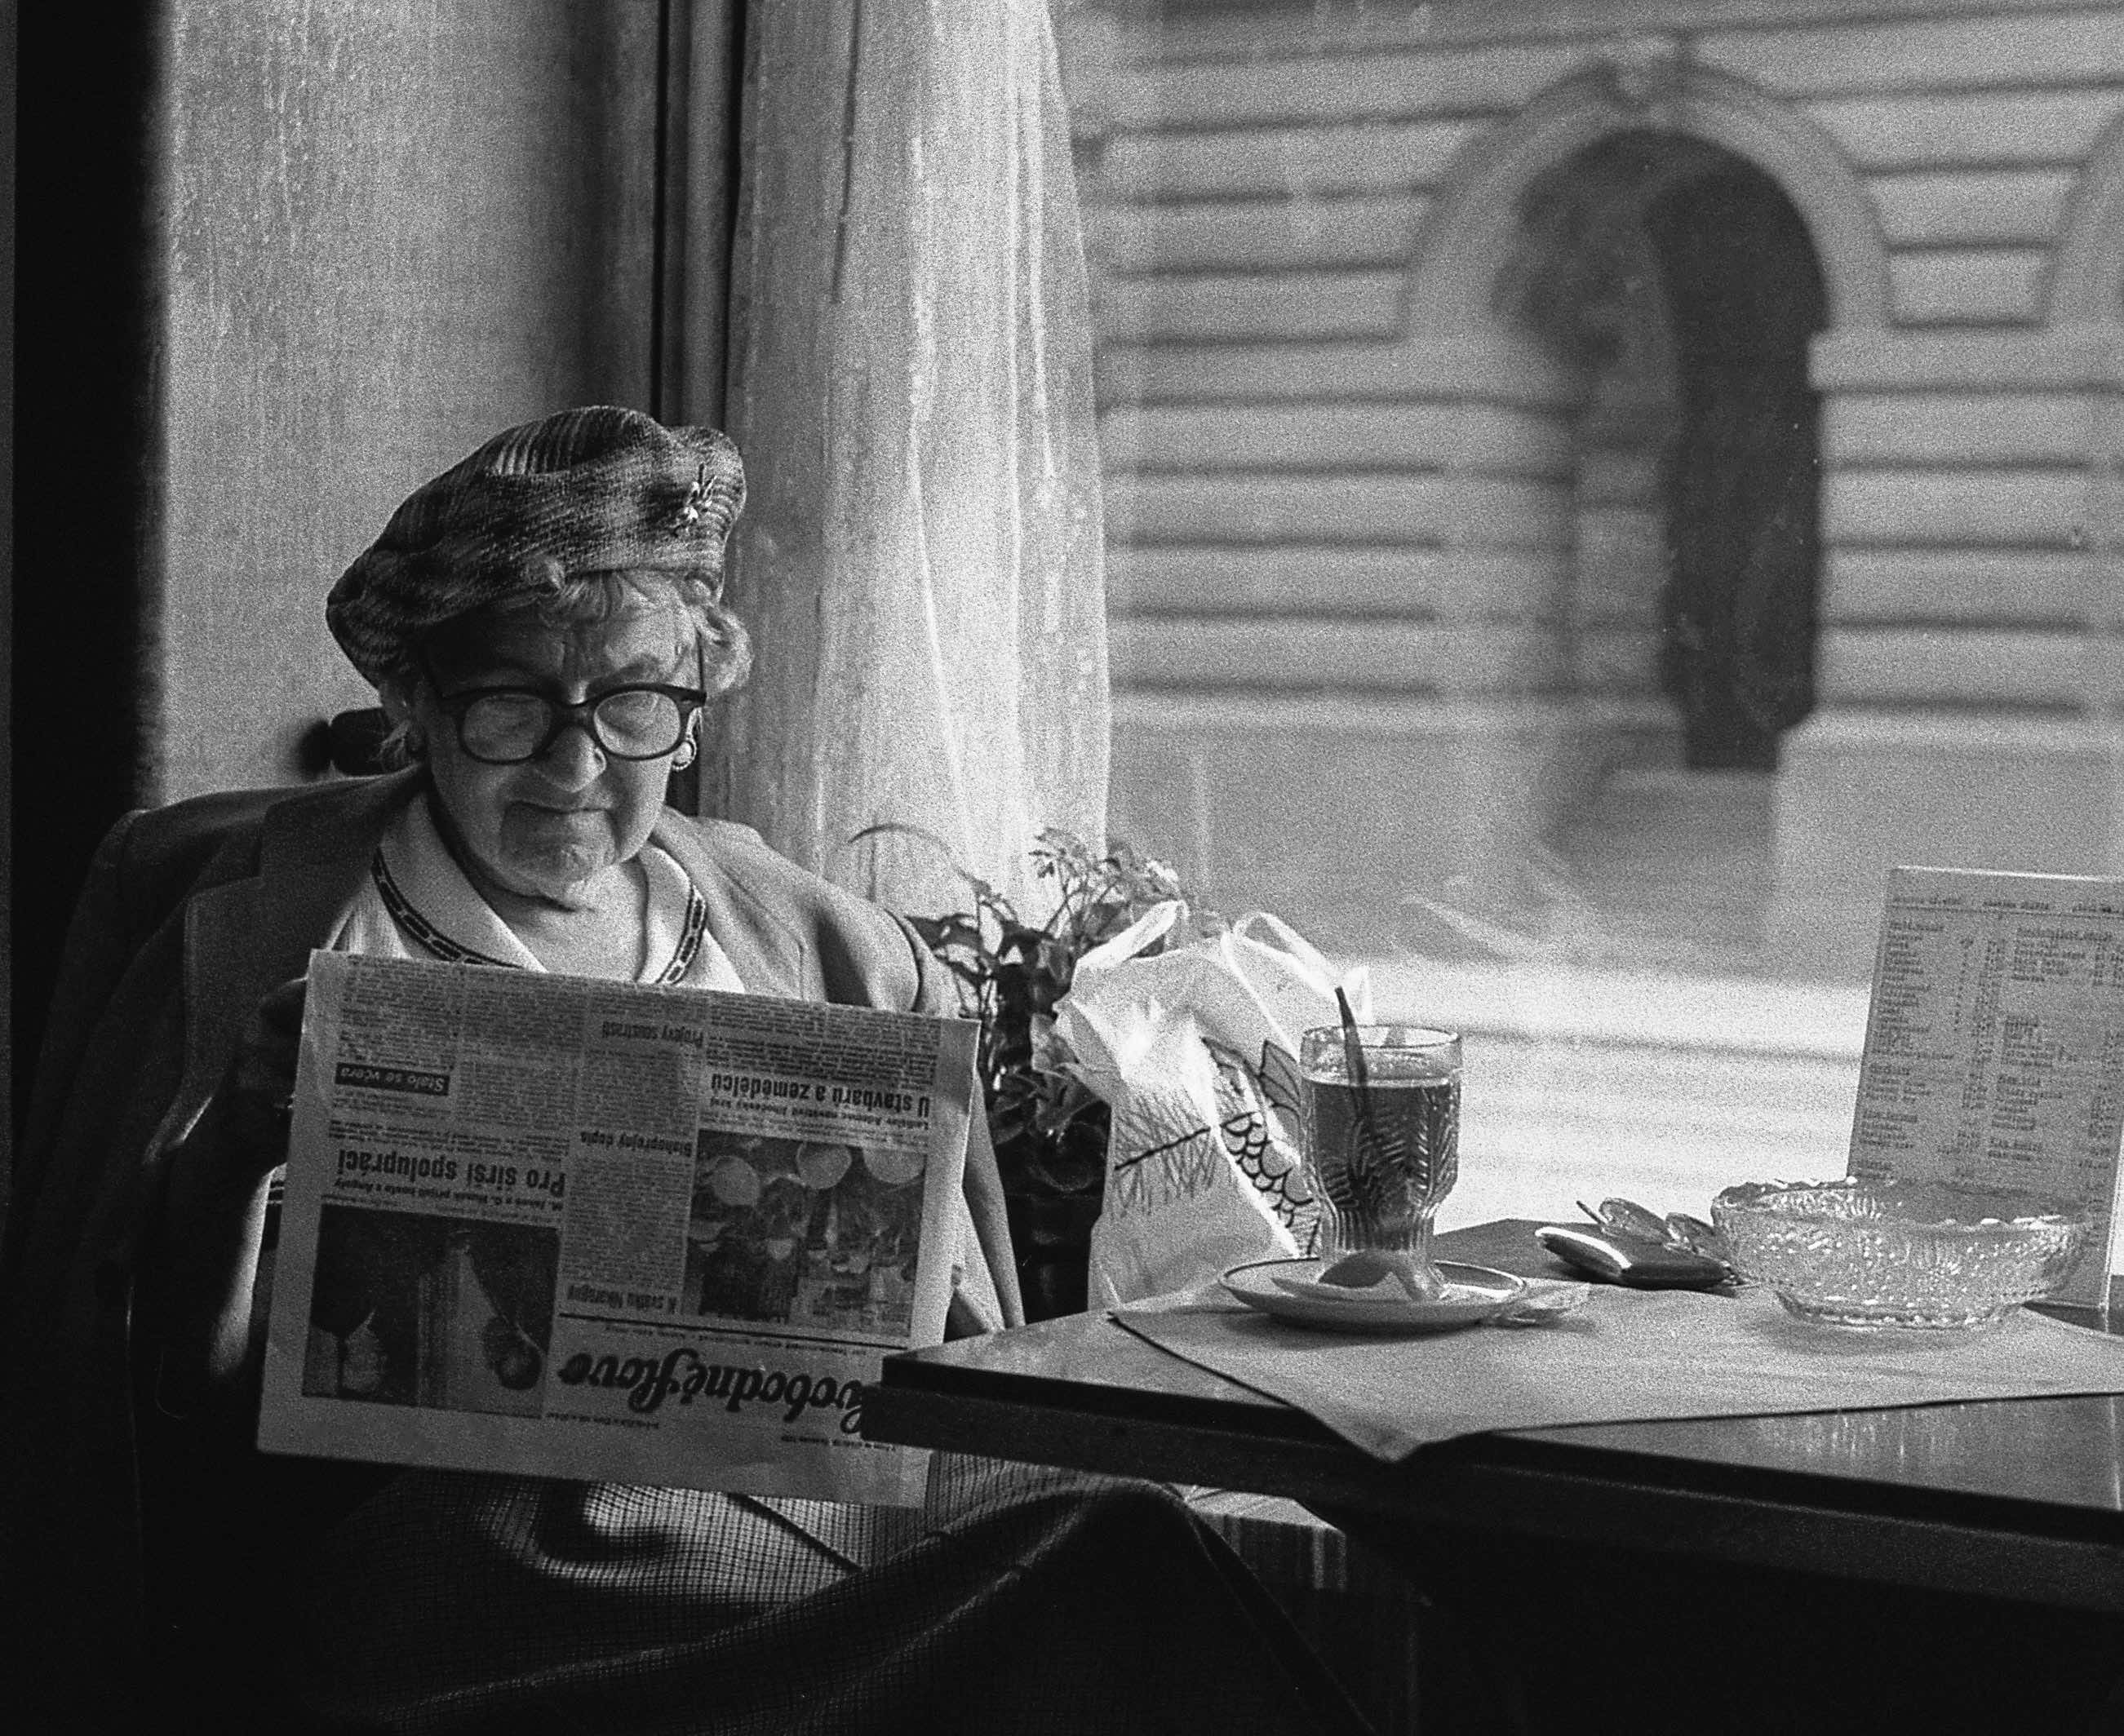 A woman reads a newspaper. You can learn to write reviews that sell.